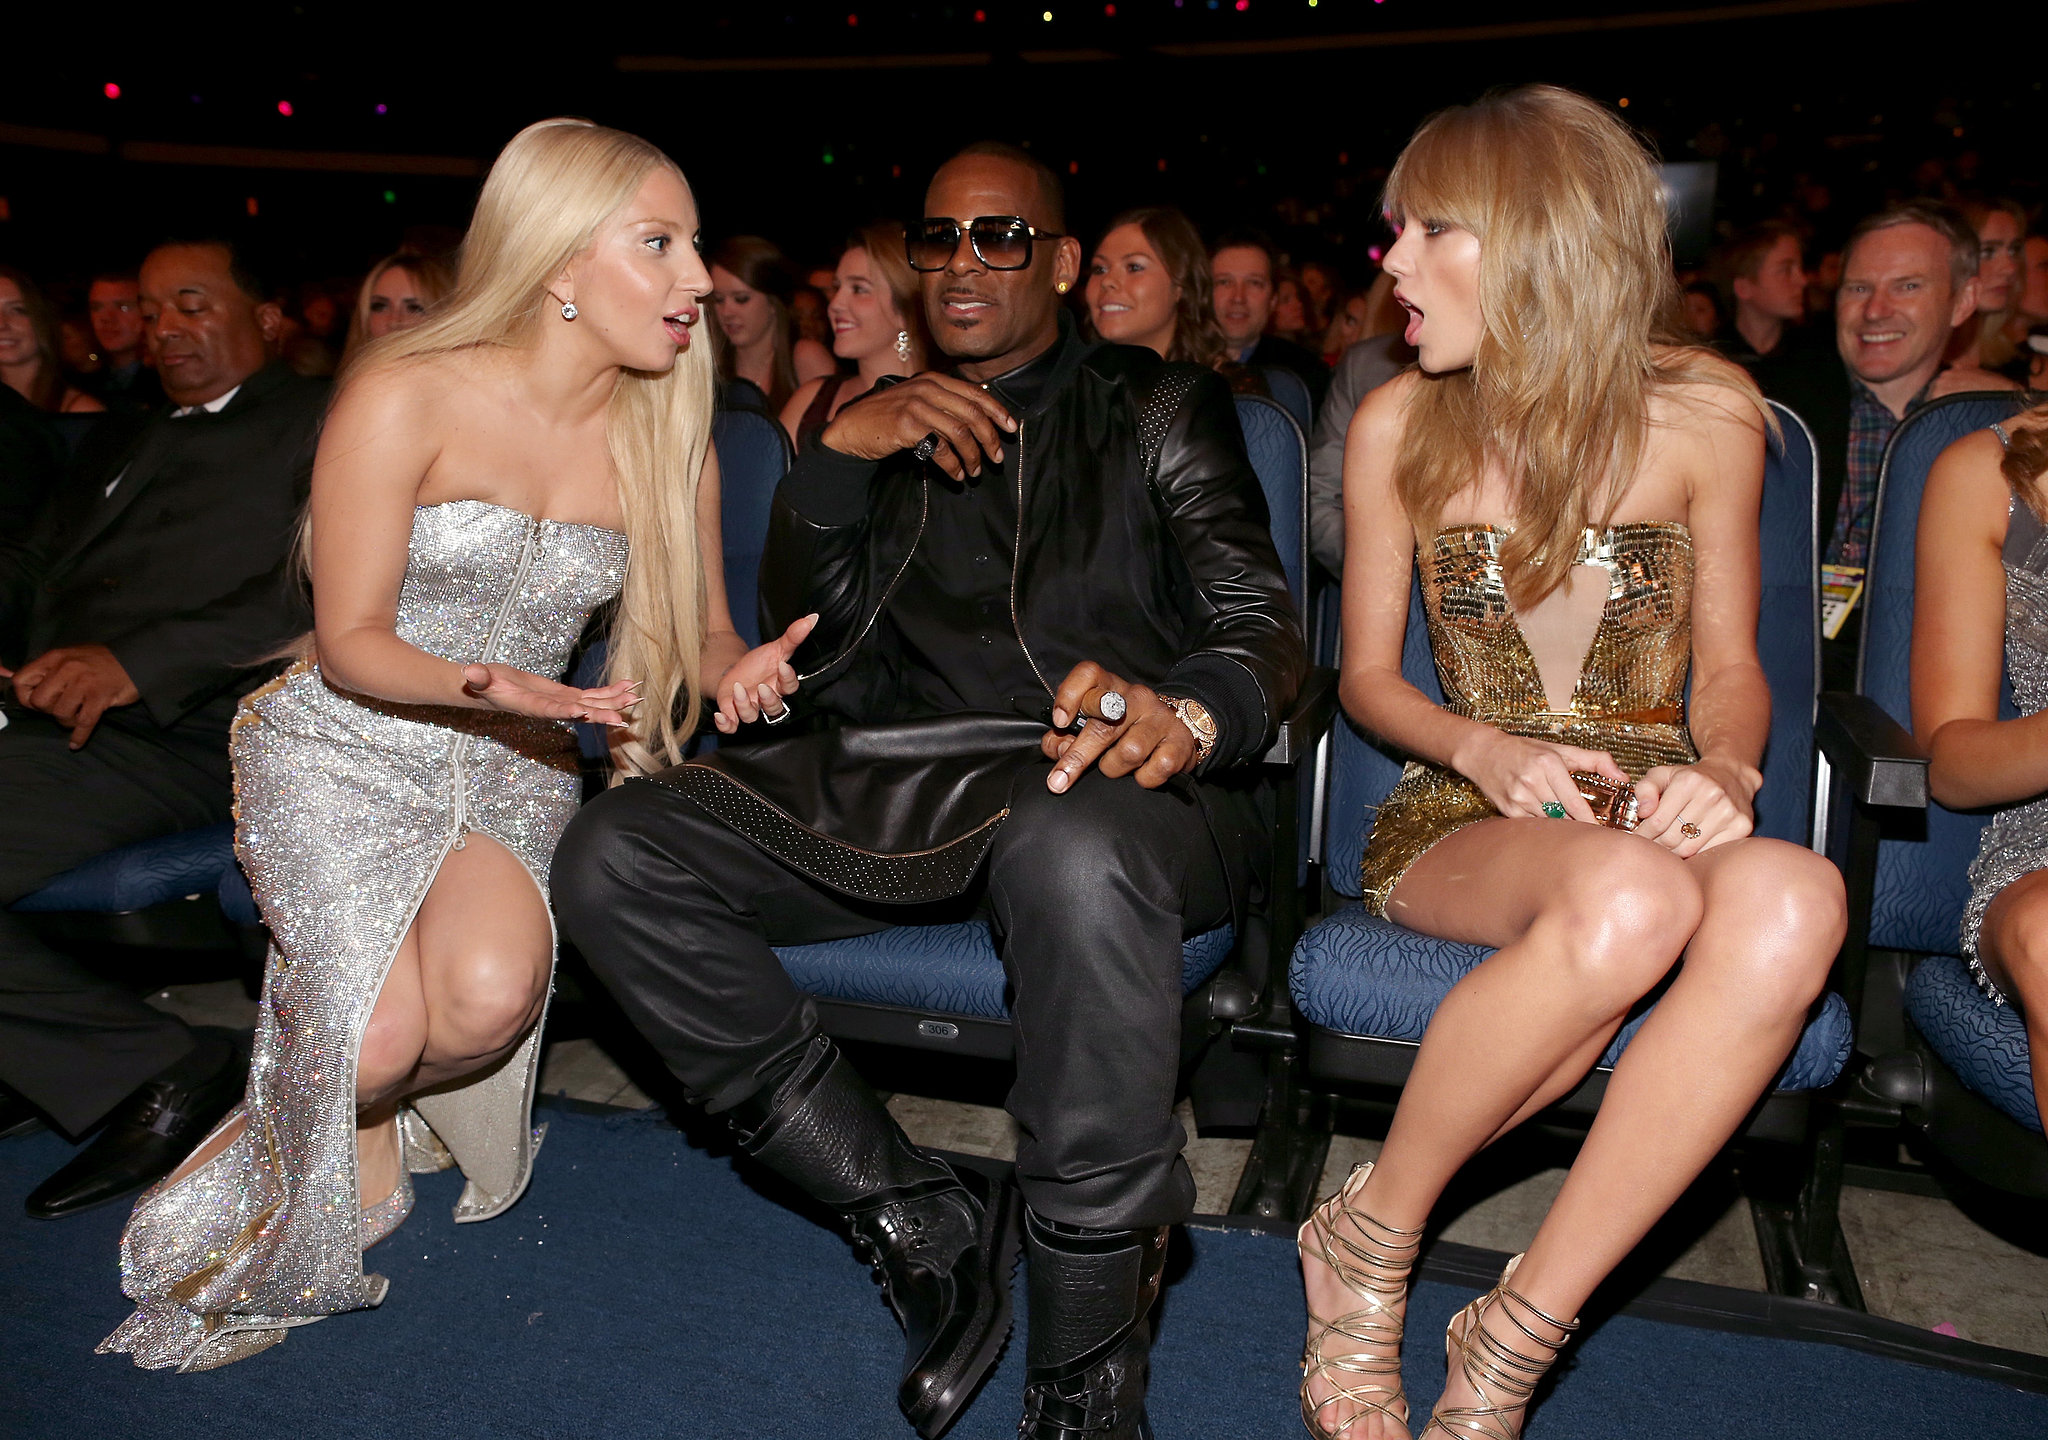 At the AMAs, Lady Gaga and Taylor Swift had a very intense talk while R. Kelly sat between them.